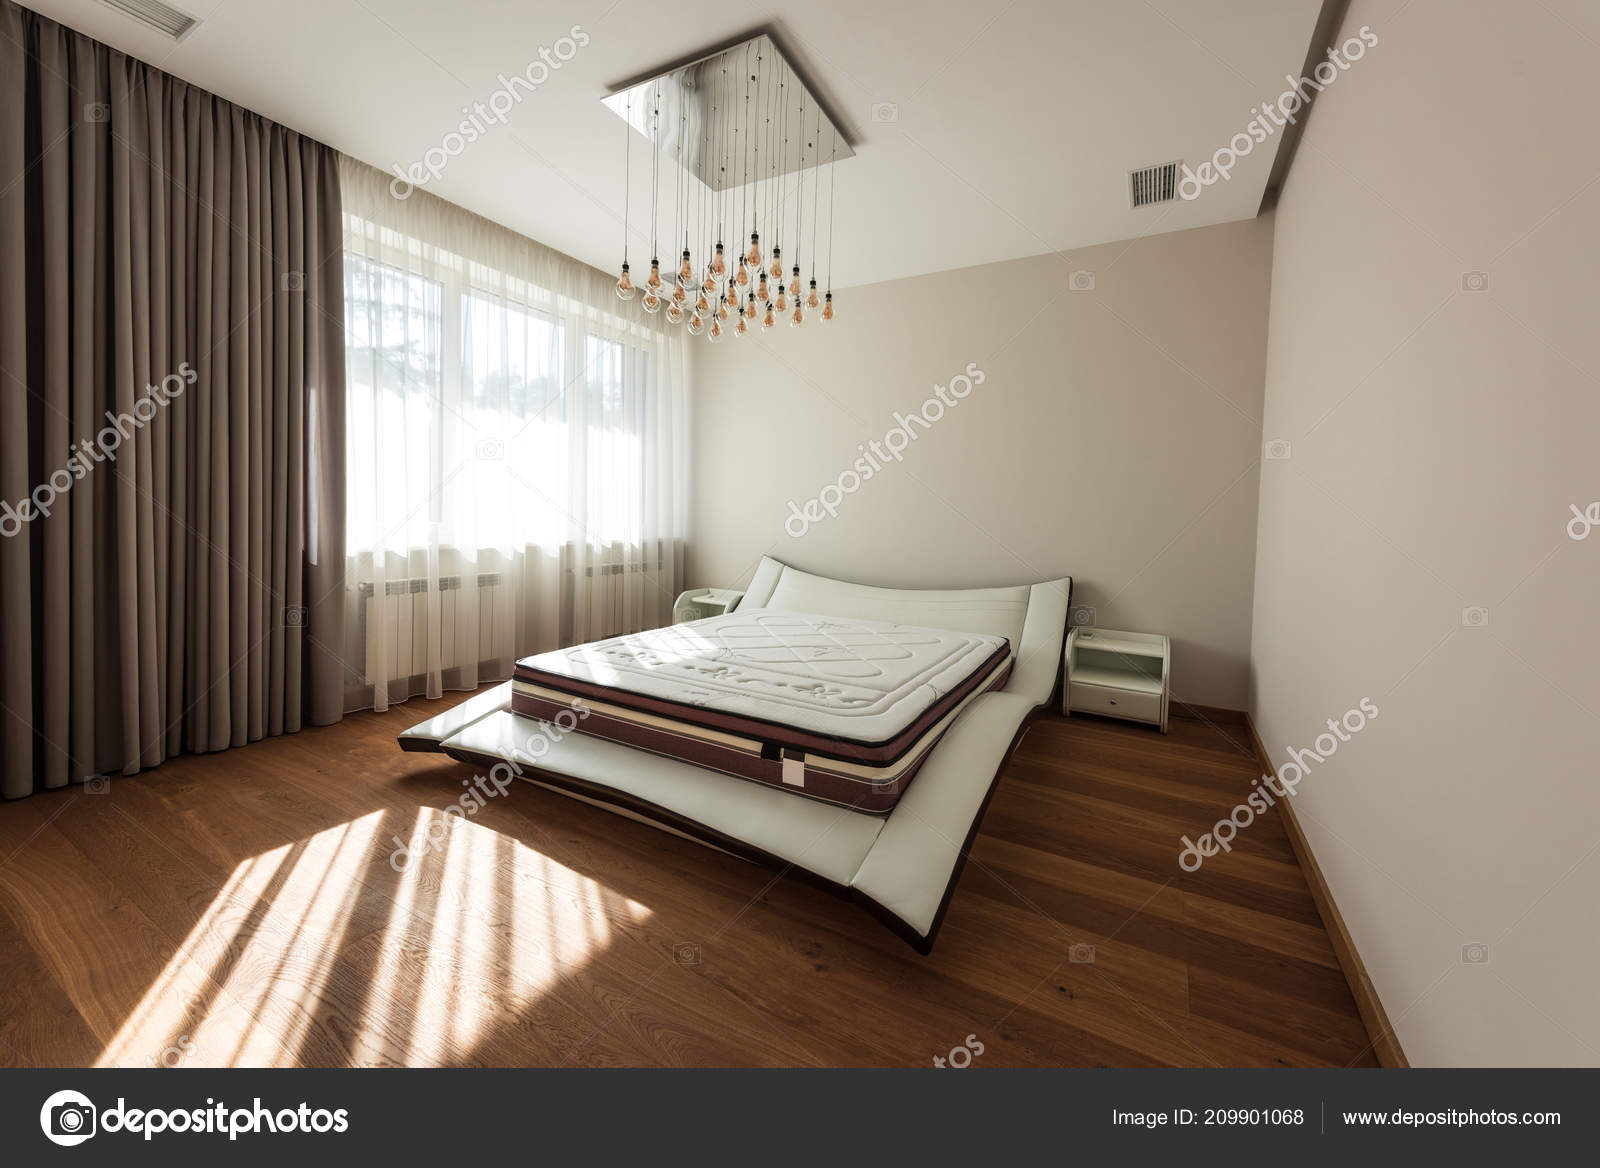 Interior modern bedroom bed light bulbs ceiling u stock photo y